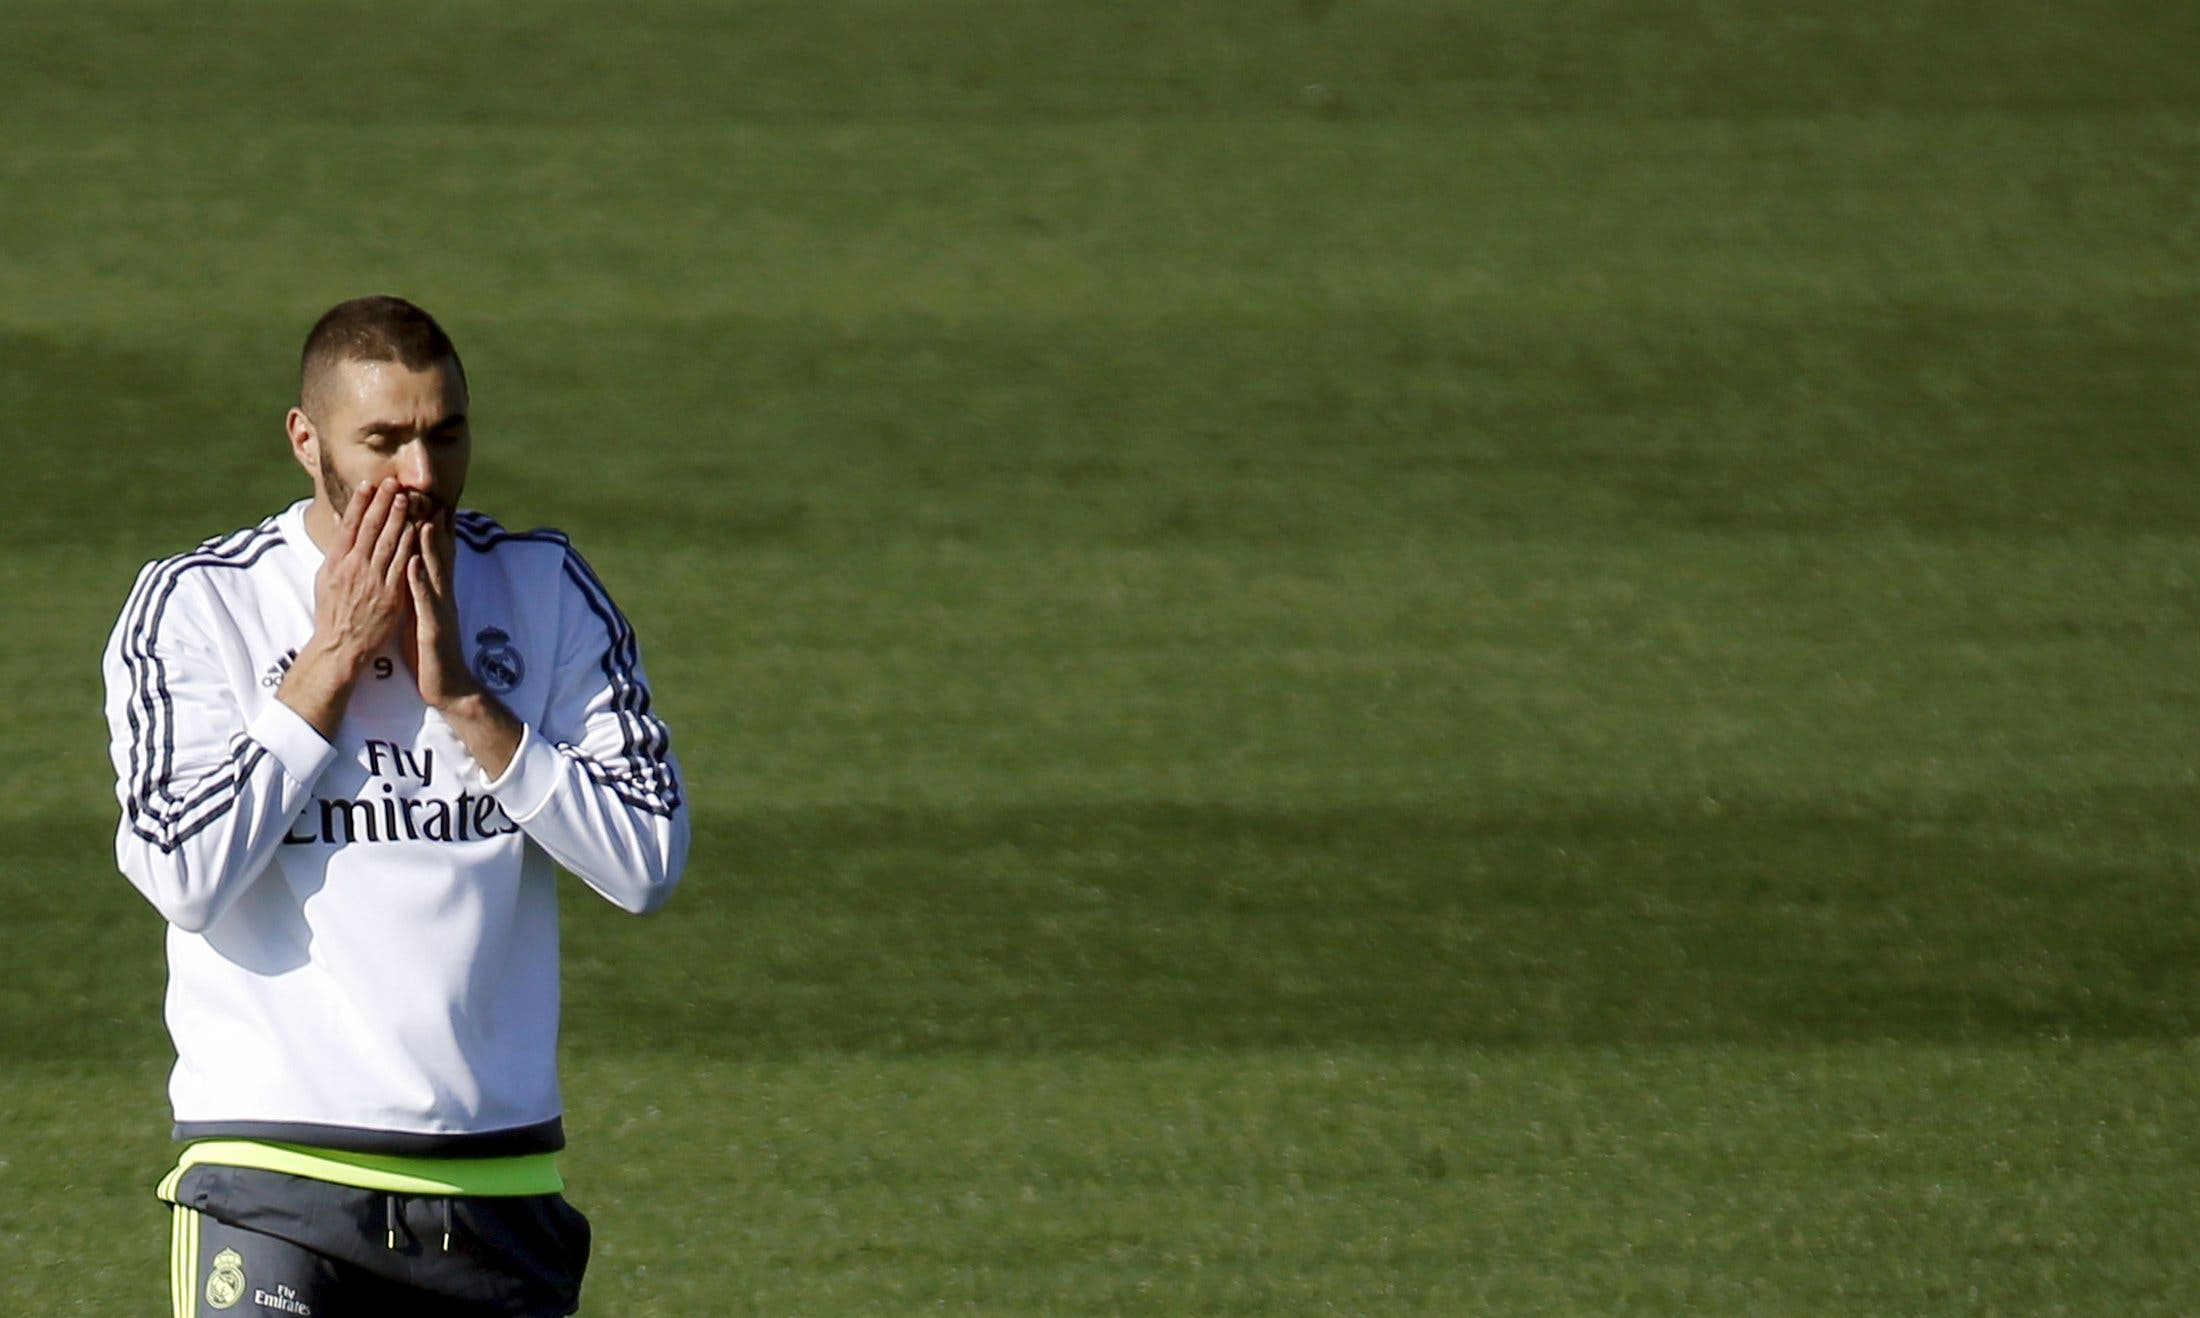 Real Madrid's Karim Benzema gestures during a training session at the team's training grounds outside Madrid, Spain, November 7, 2015. (Reuters)